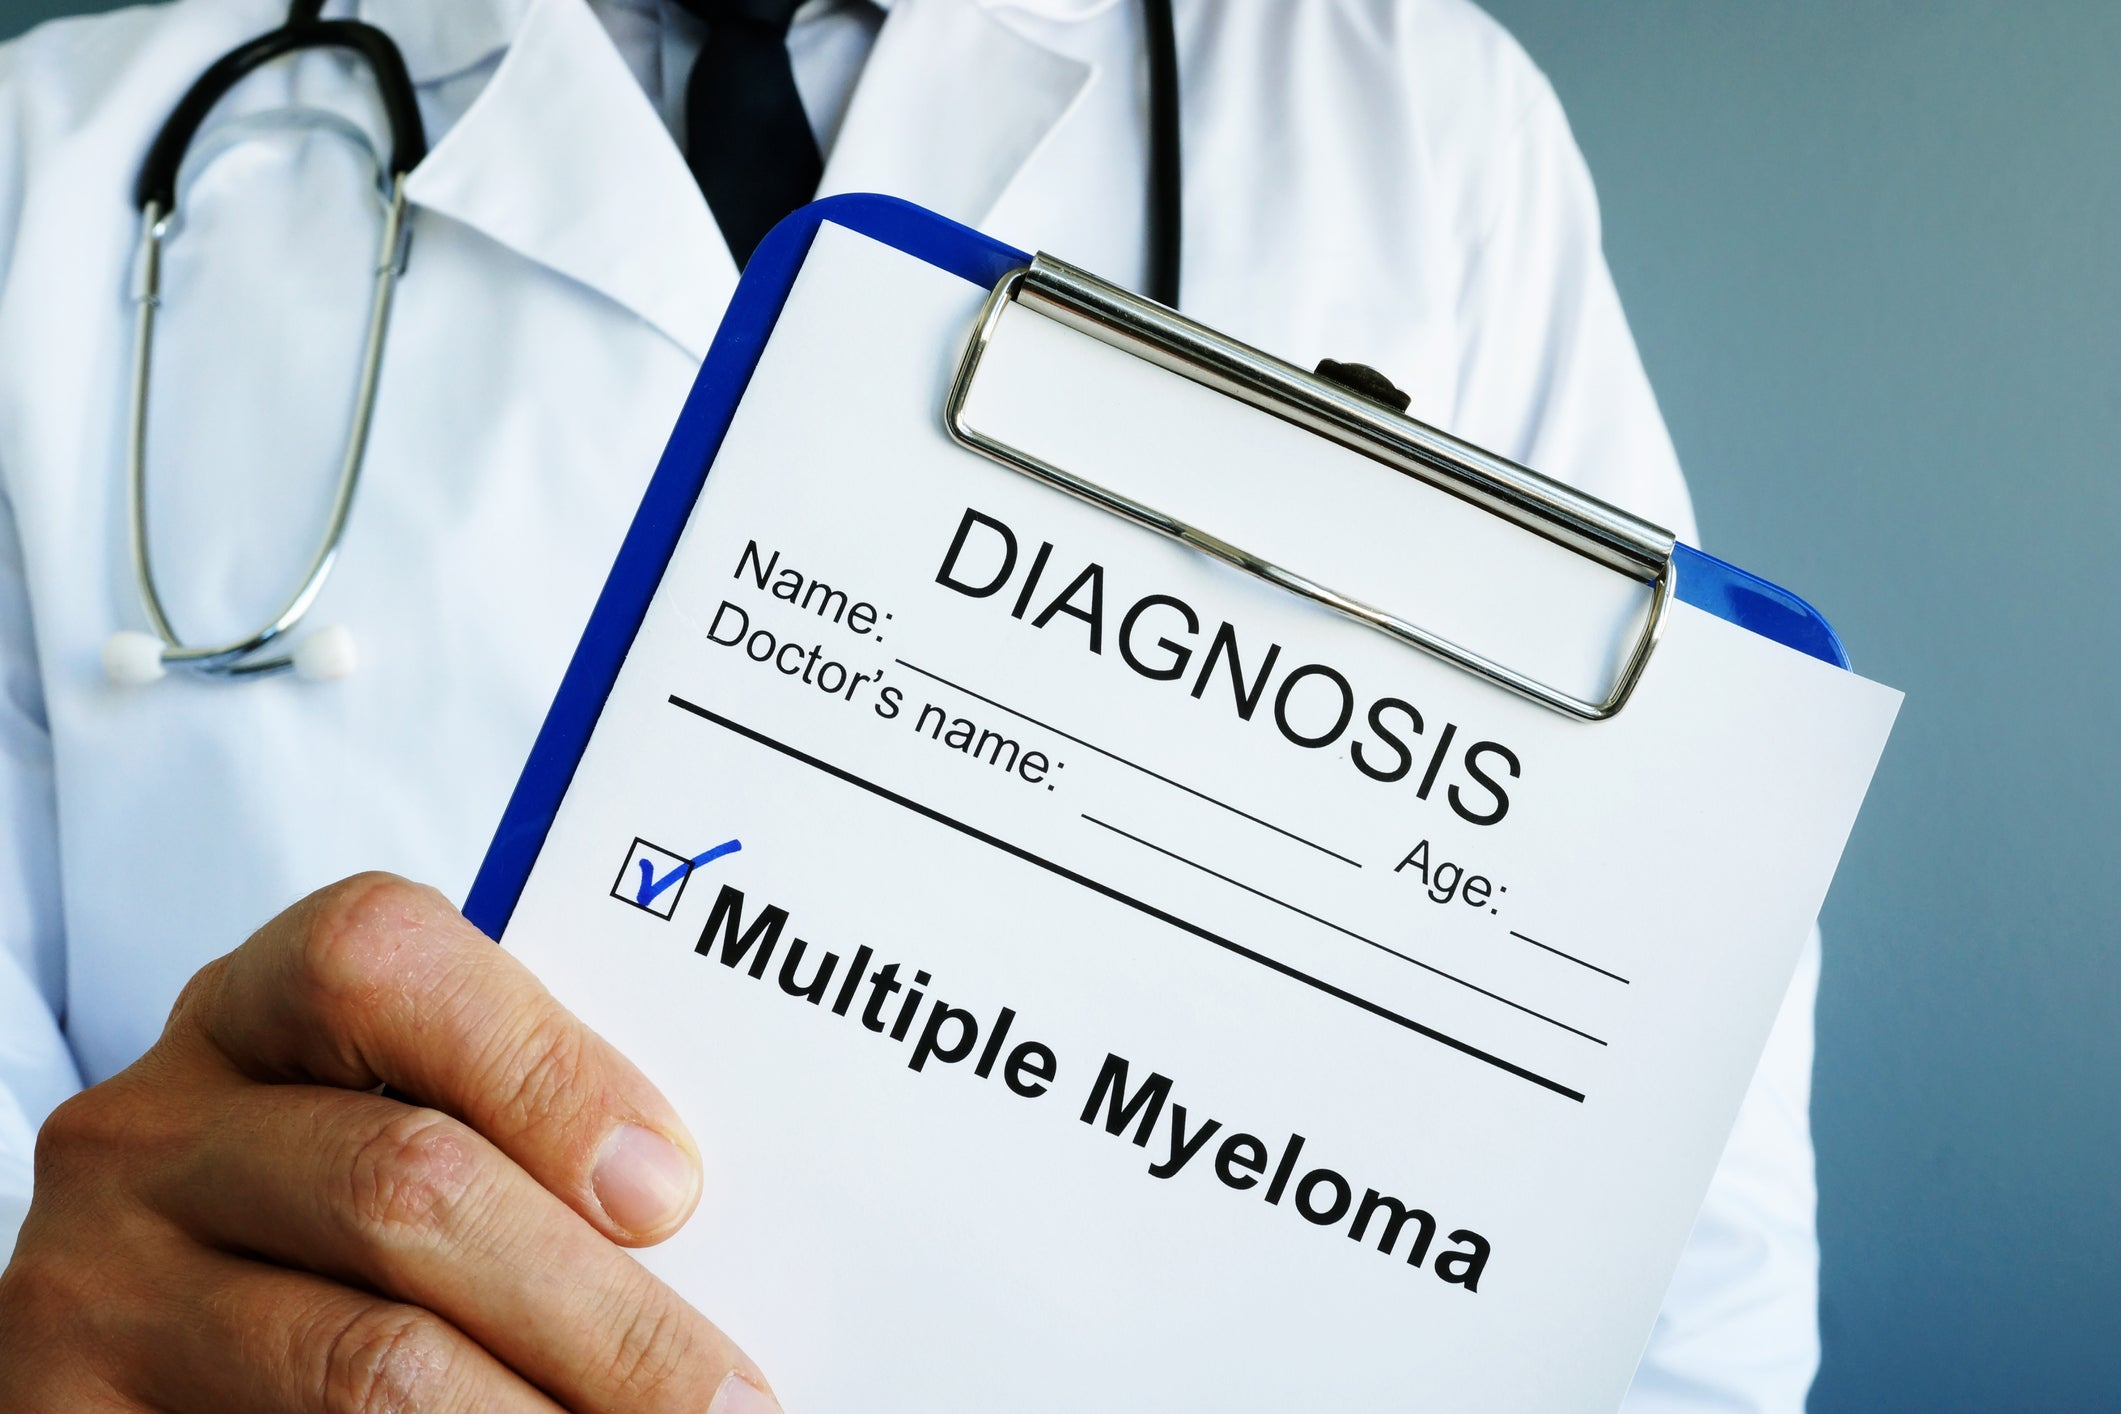 Johnson & Johnson Submits FDA Application for Multiple Myeloma Drug | The Motley Fool